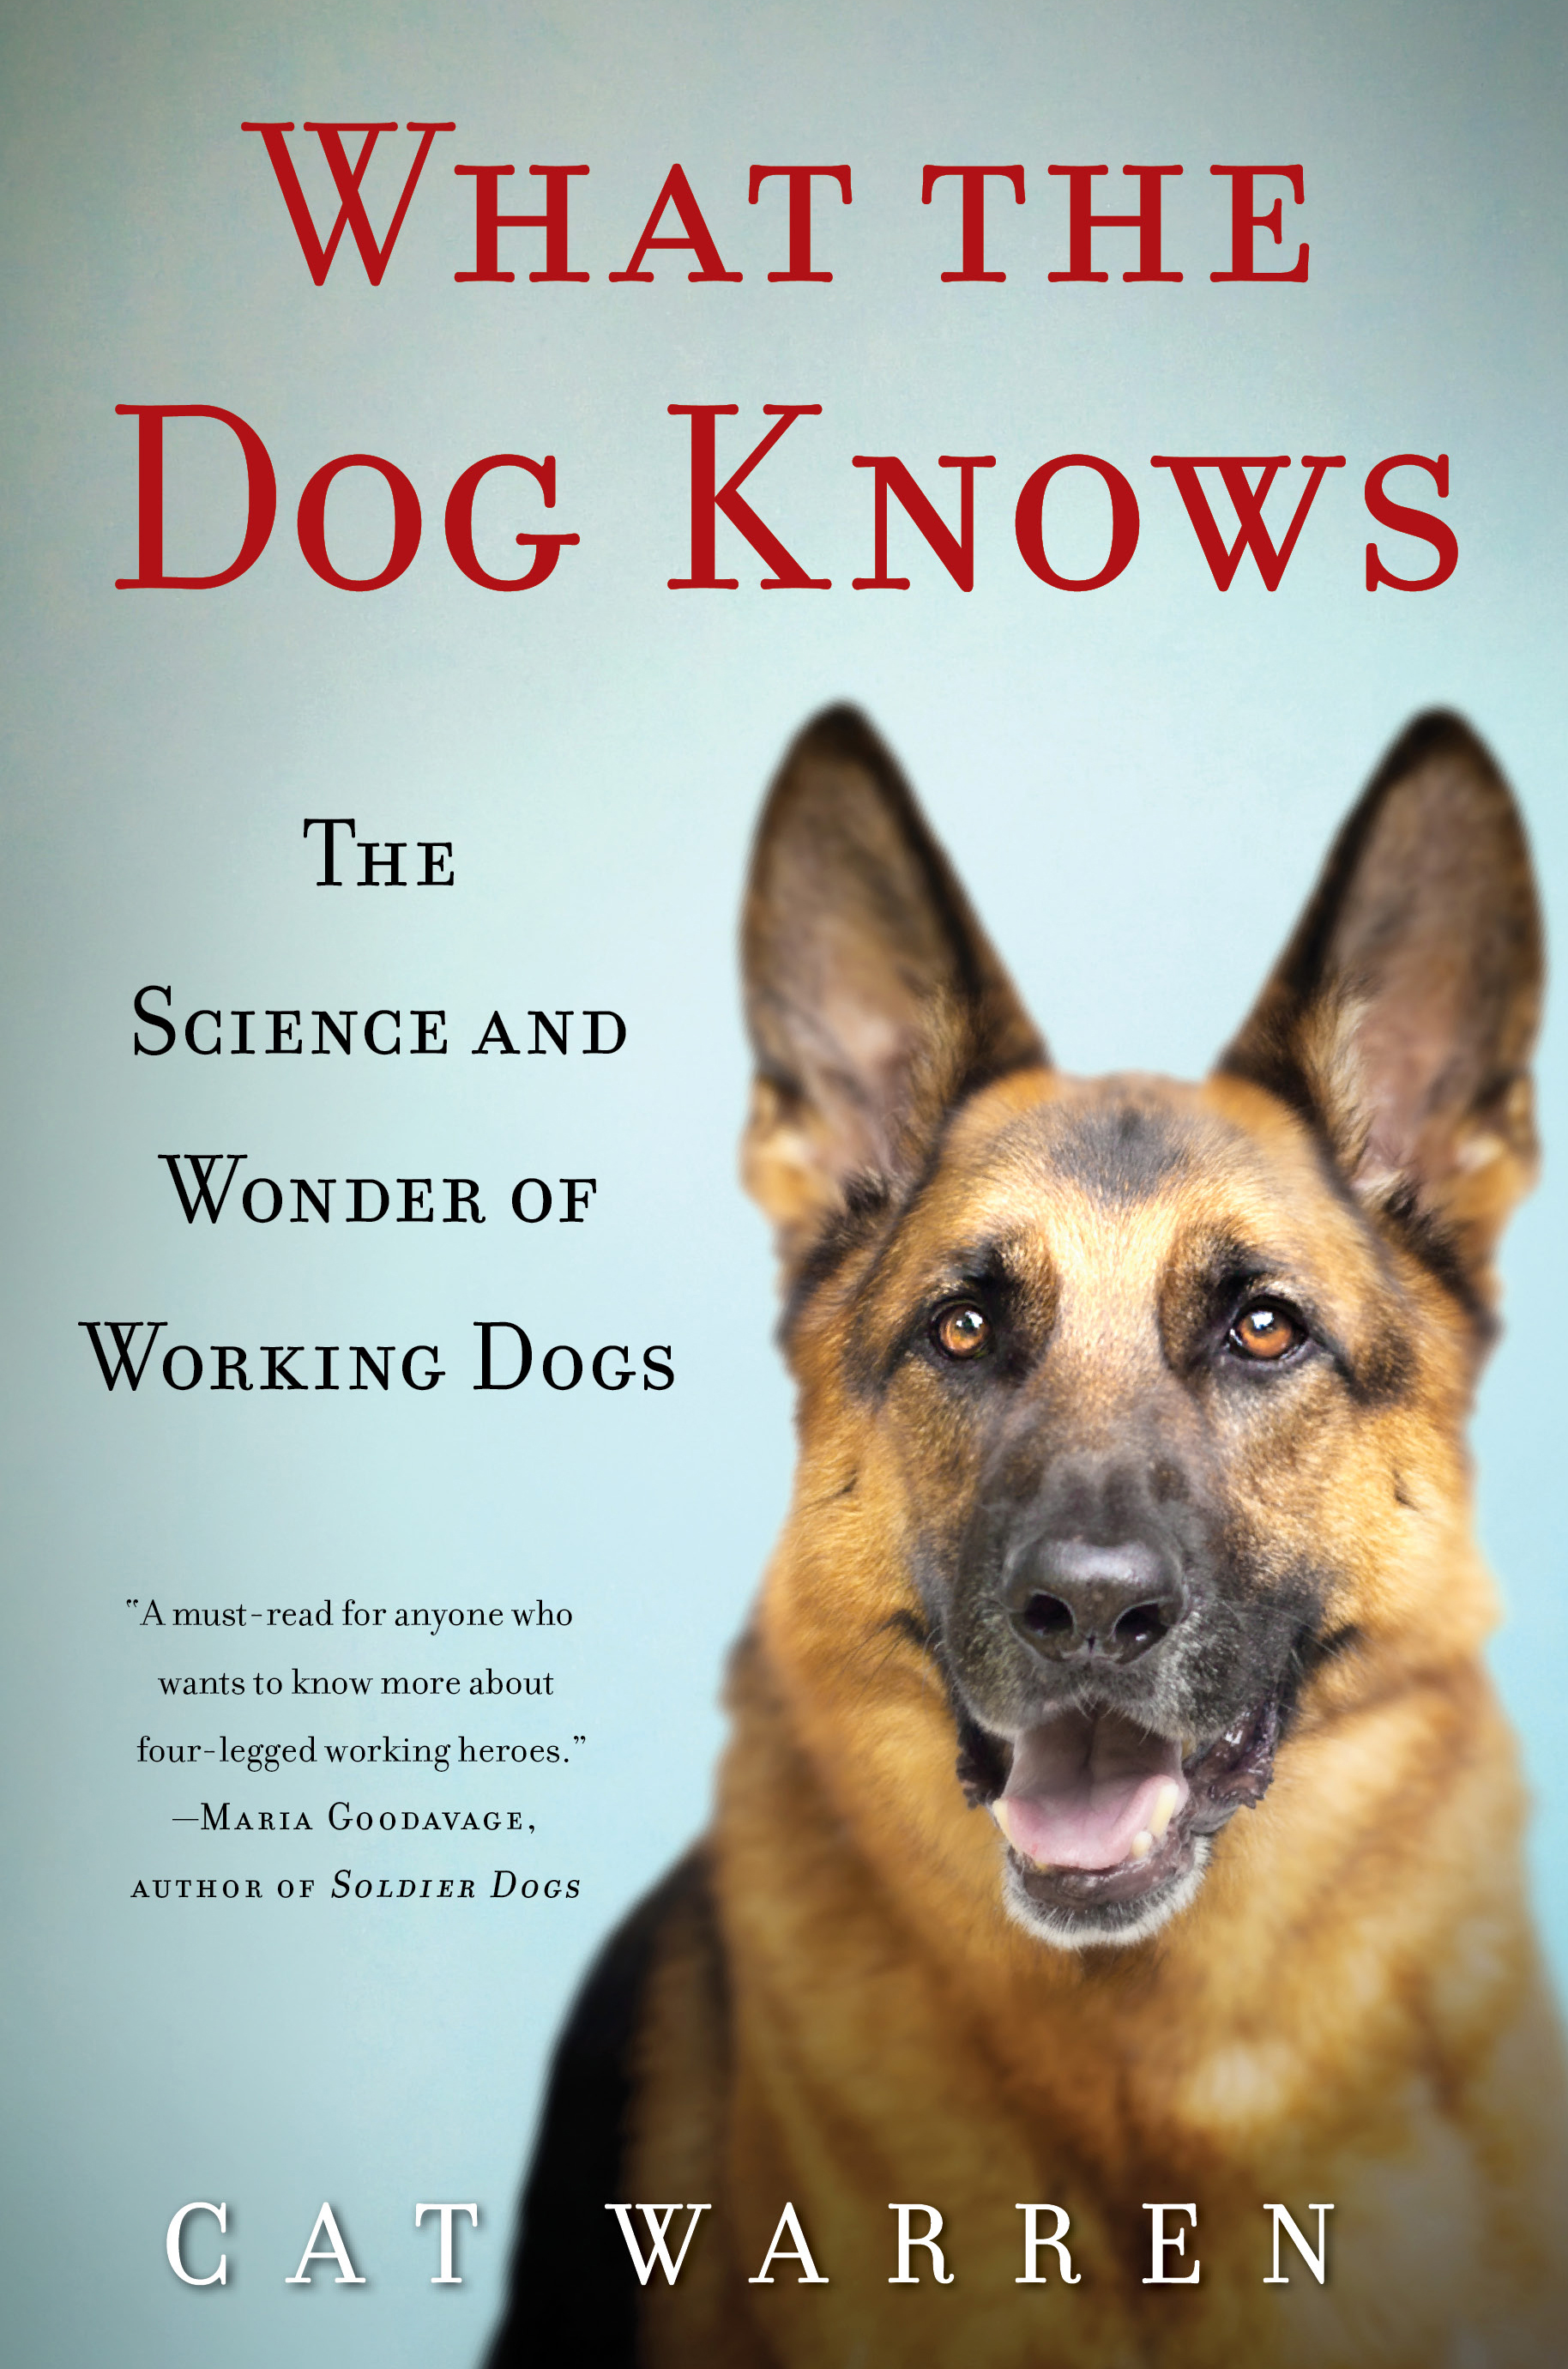 Soldier dog ebook best deal gallery free ebooks and more what the dog knows book by cat warren official publisher page cvr9781451667318 9781451667318 hr what the fandeluxe Choice Image